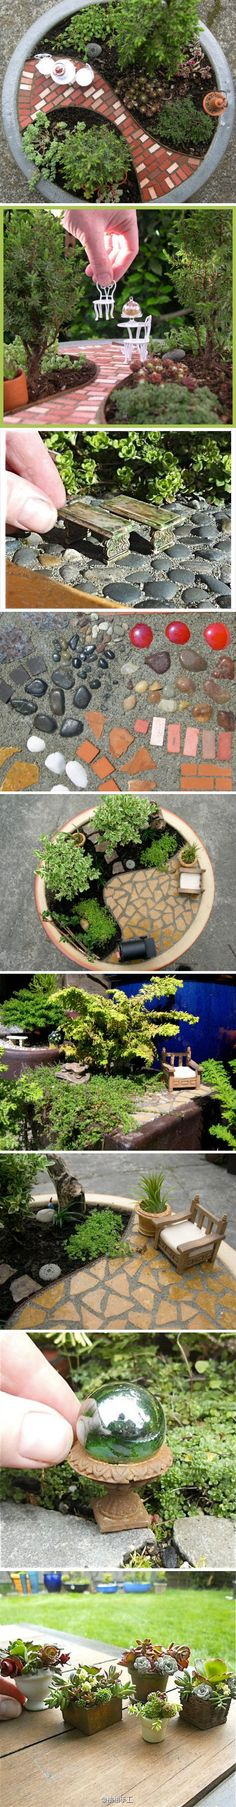 My son and I have been talking about creating a miniature garden.  This is great inspiration!